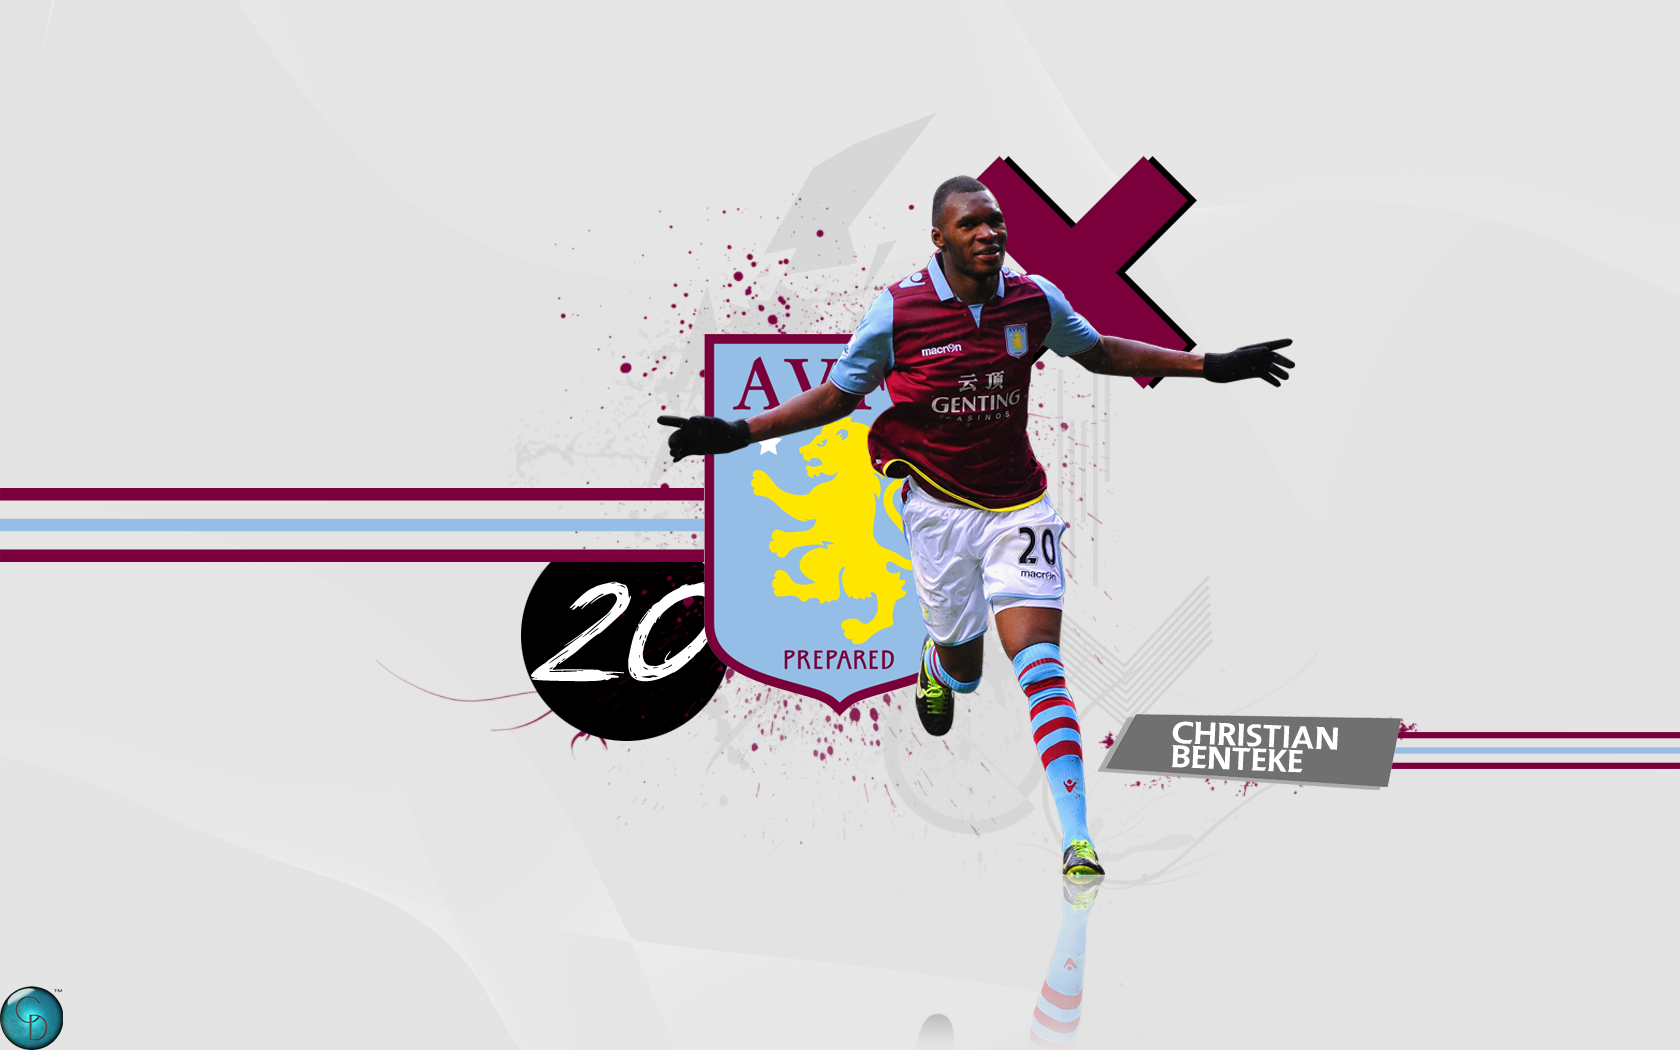 Christian Benteke Football Wallpaper Backgrounds and Picture 1680x1050